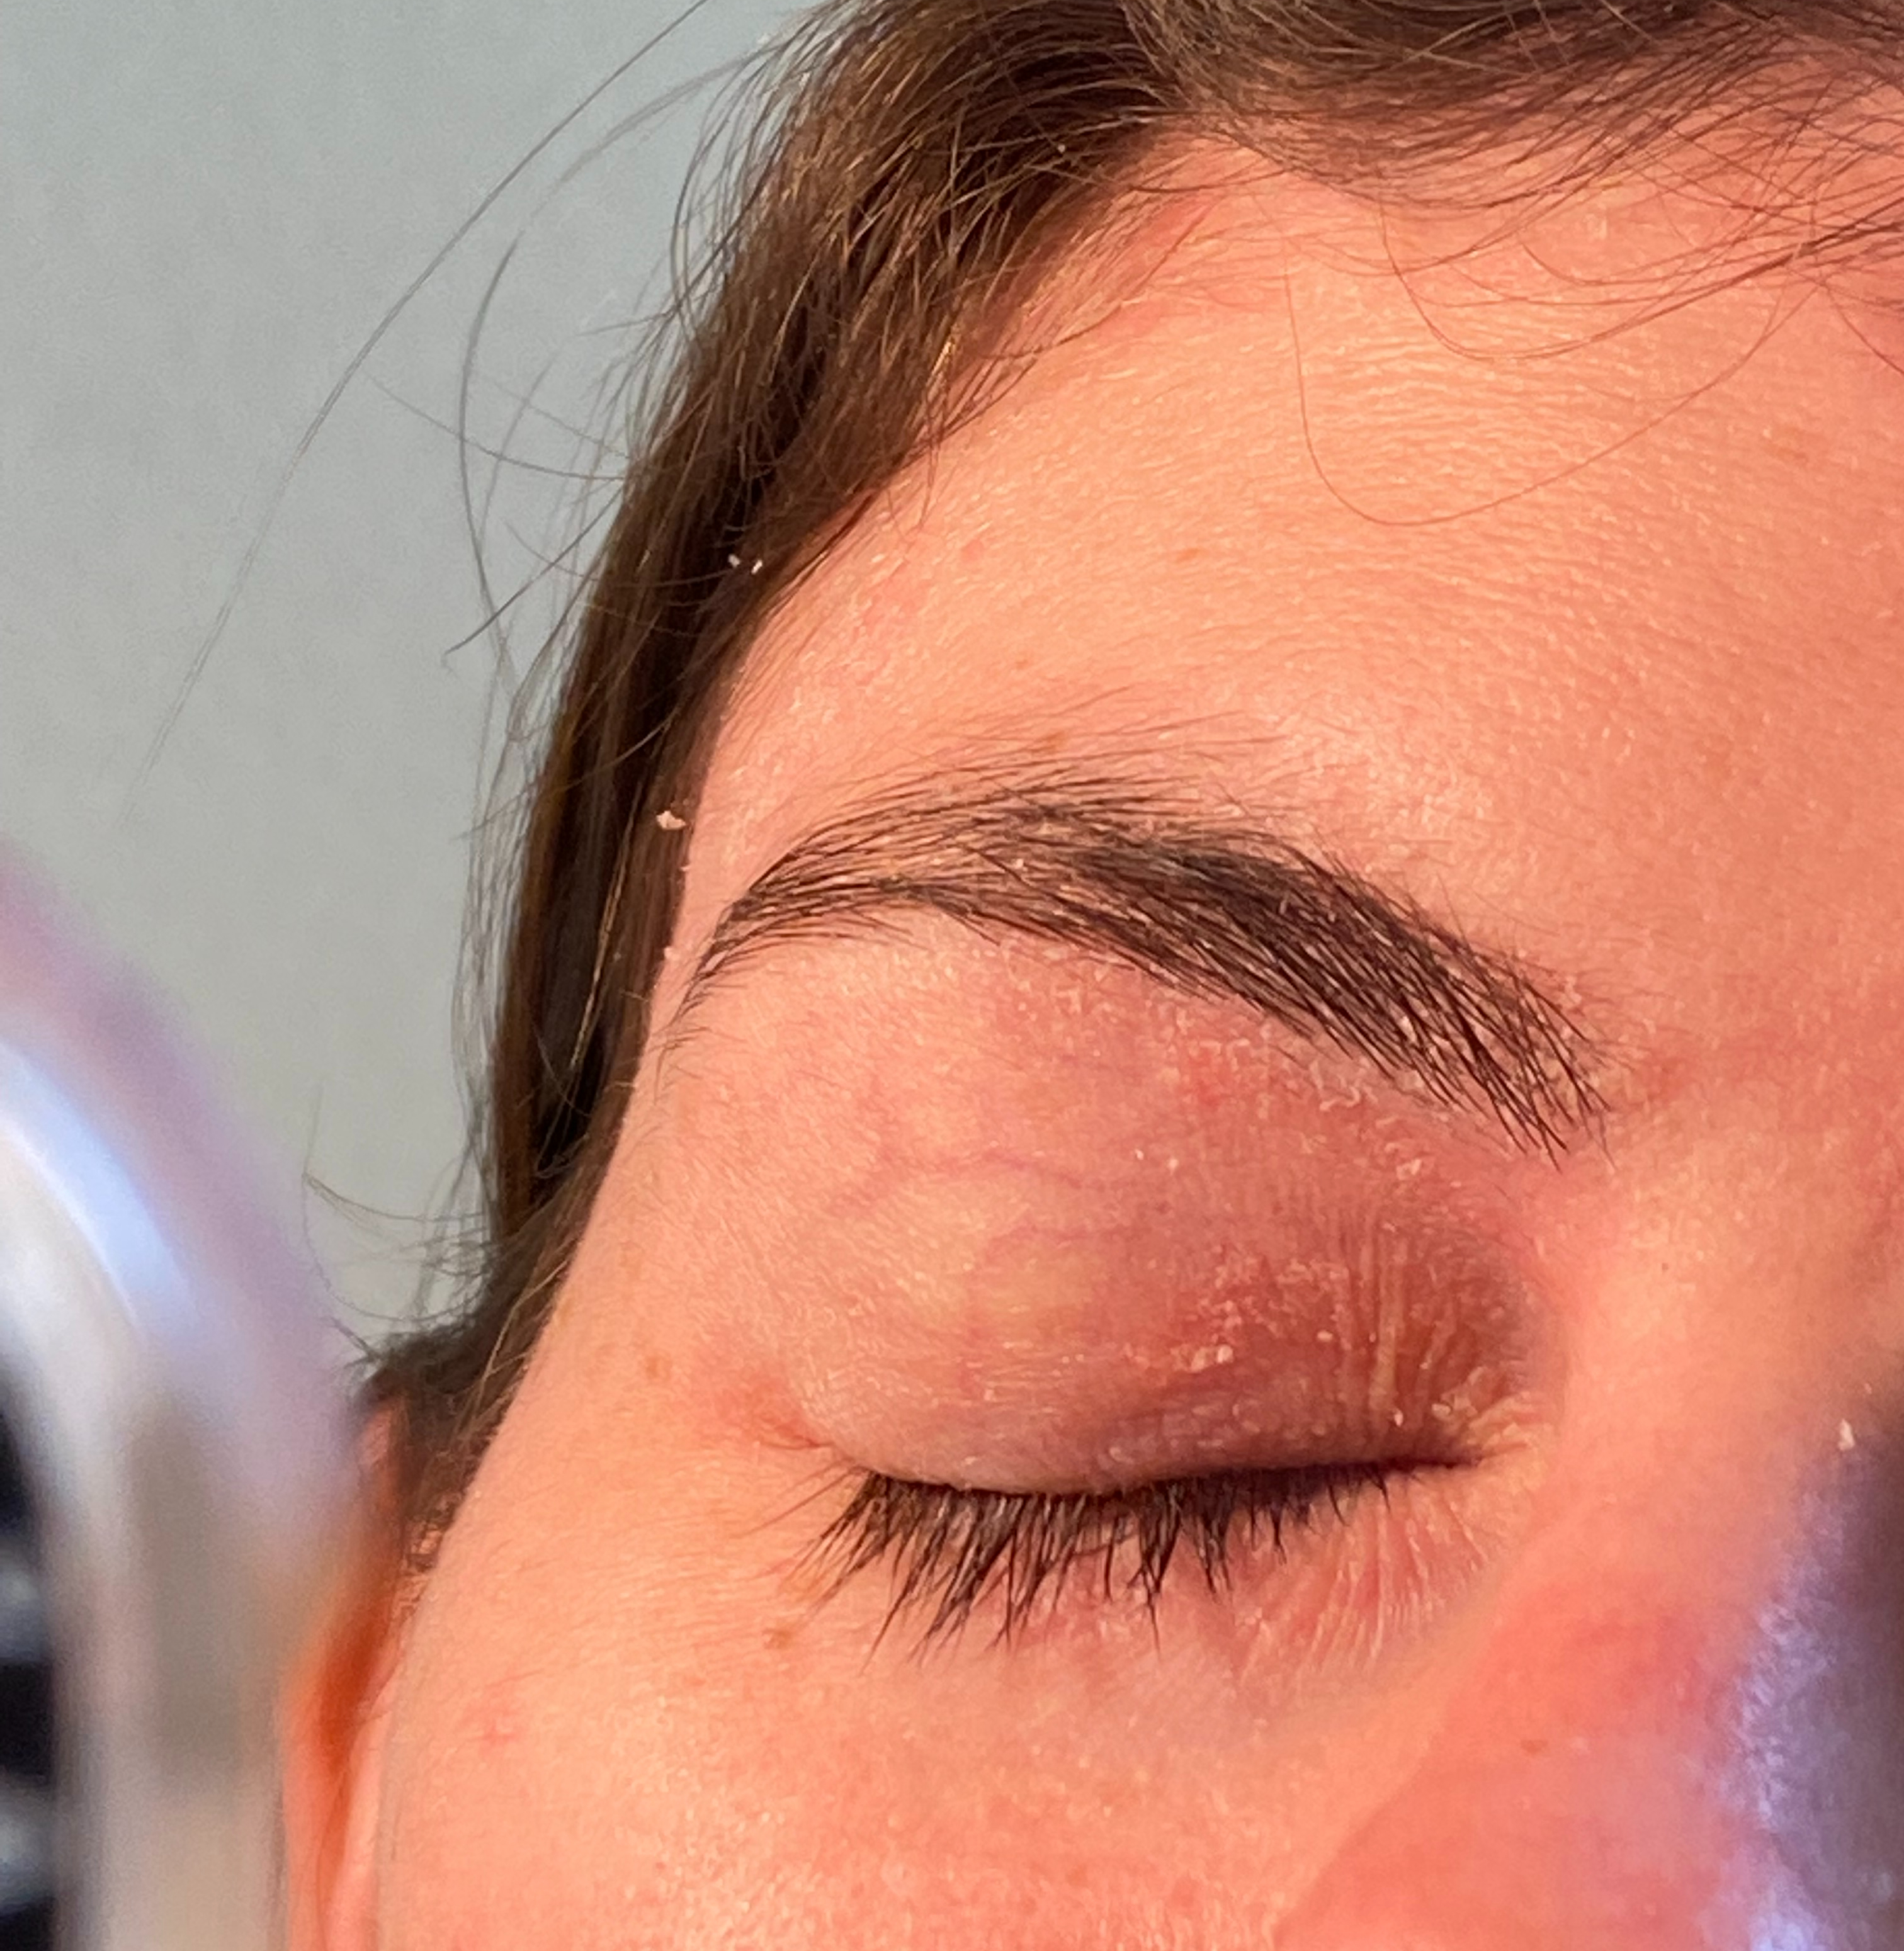 A person's closed eye with red psoriasis on the eyelid